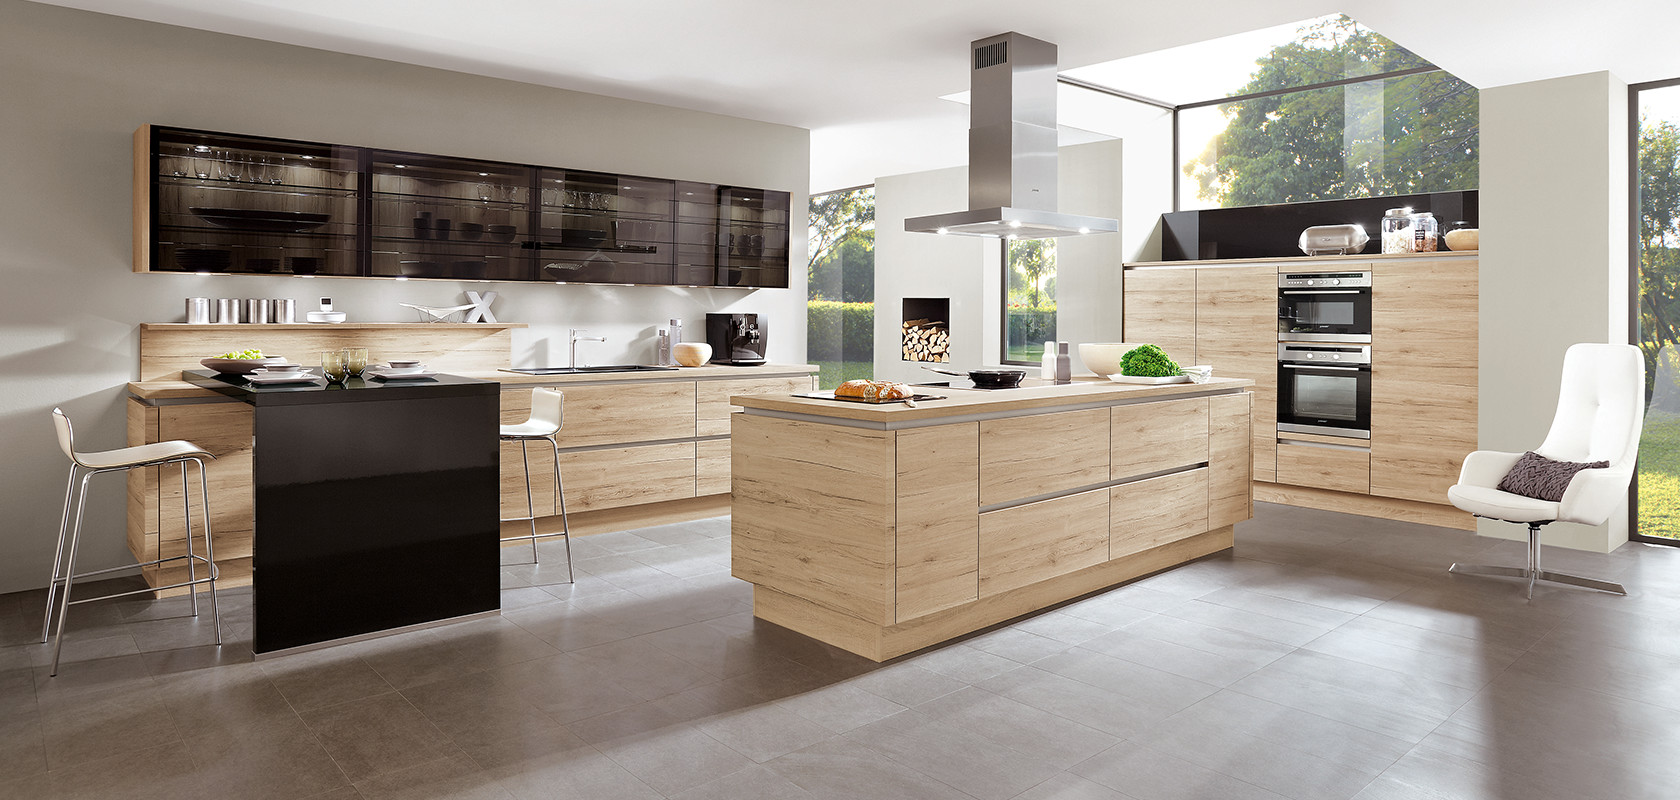 Nobilia Küche Riva Eiche Ontario German Kitchens Bespoke Kitchen Lemon And Lime Interiors